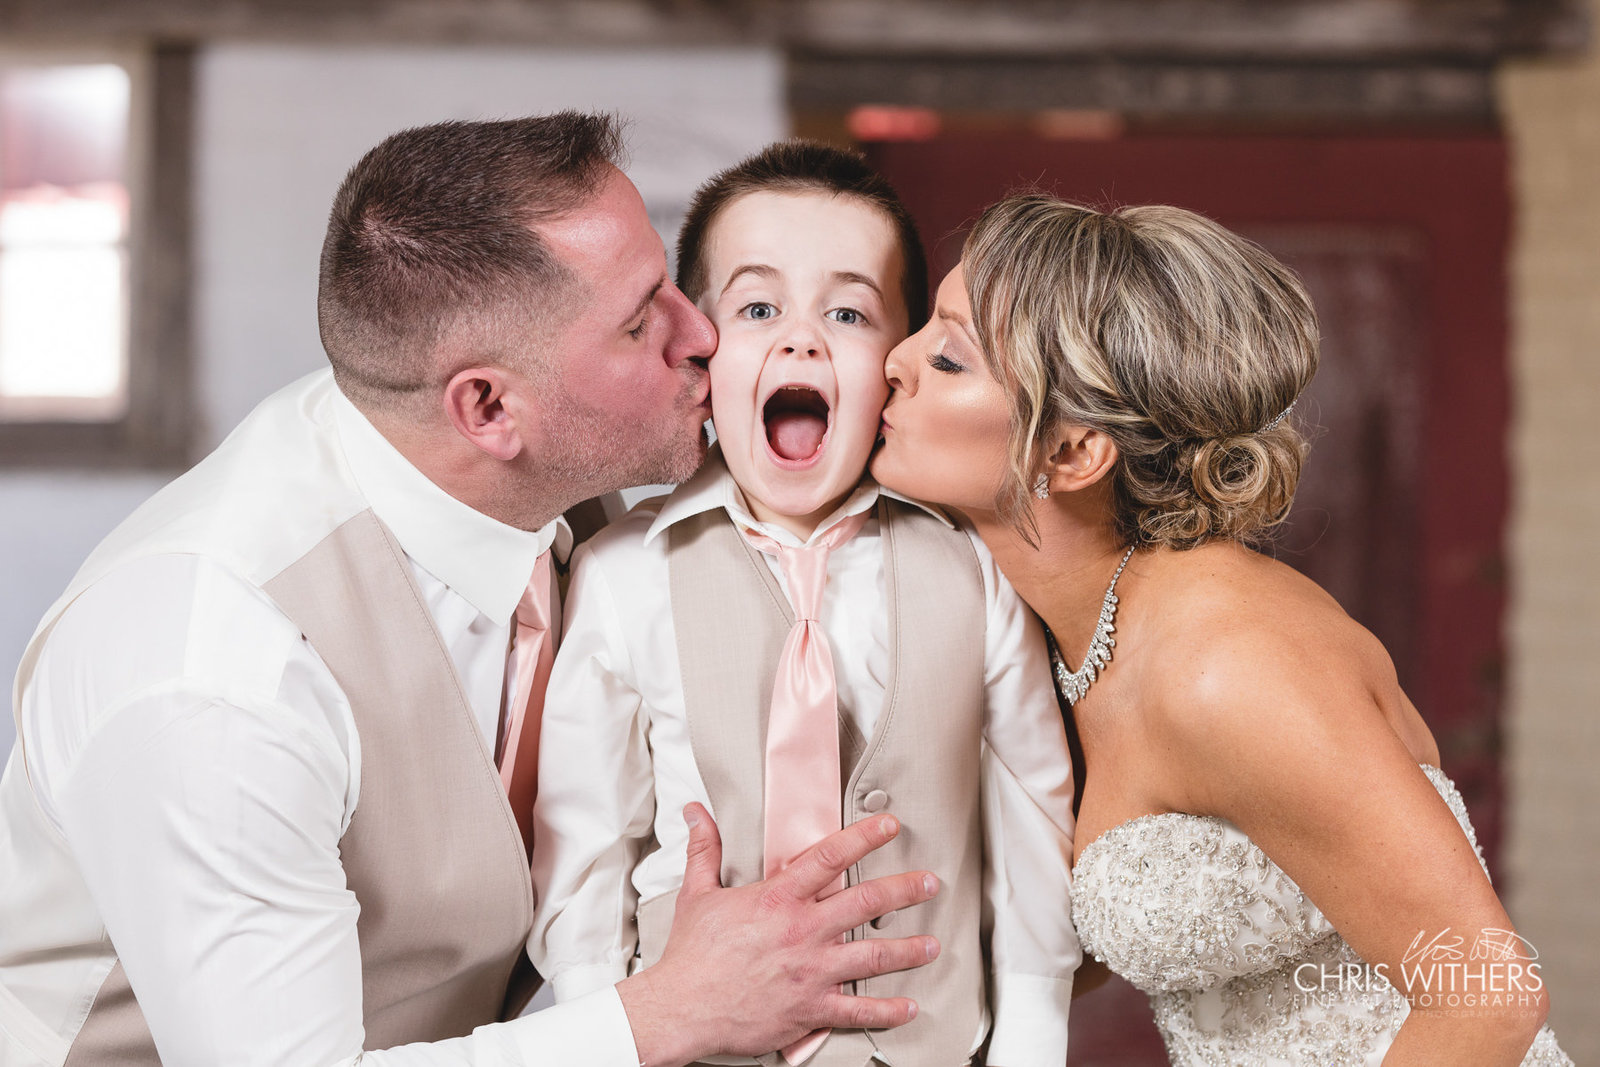 Springfield Illinois Wedding Photographer - Chris Withers Photography (155 of 159)